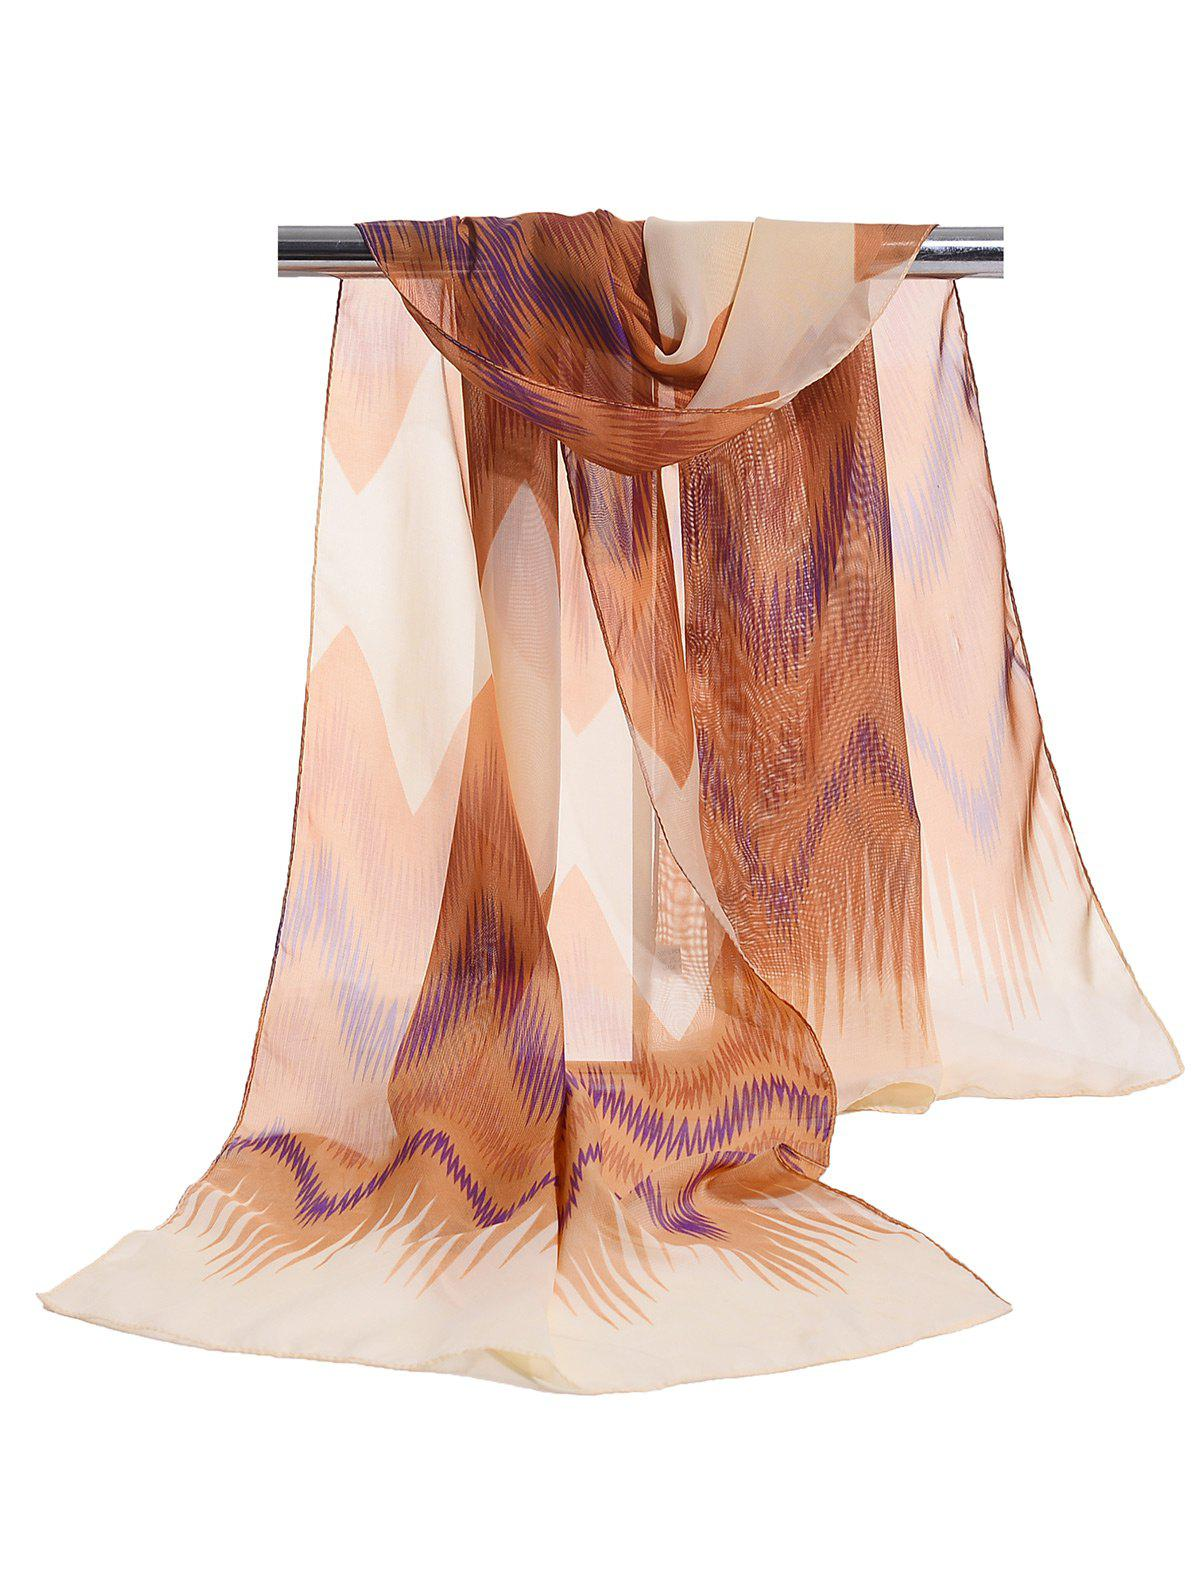 Soft Wave Stripe Pattern Silky Chiffon Scarf - LIGHT COFFEE